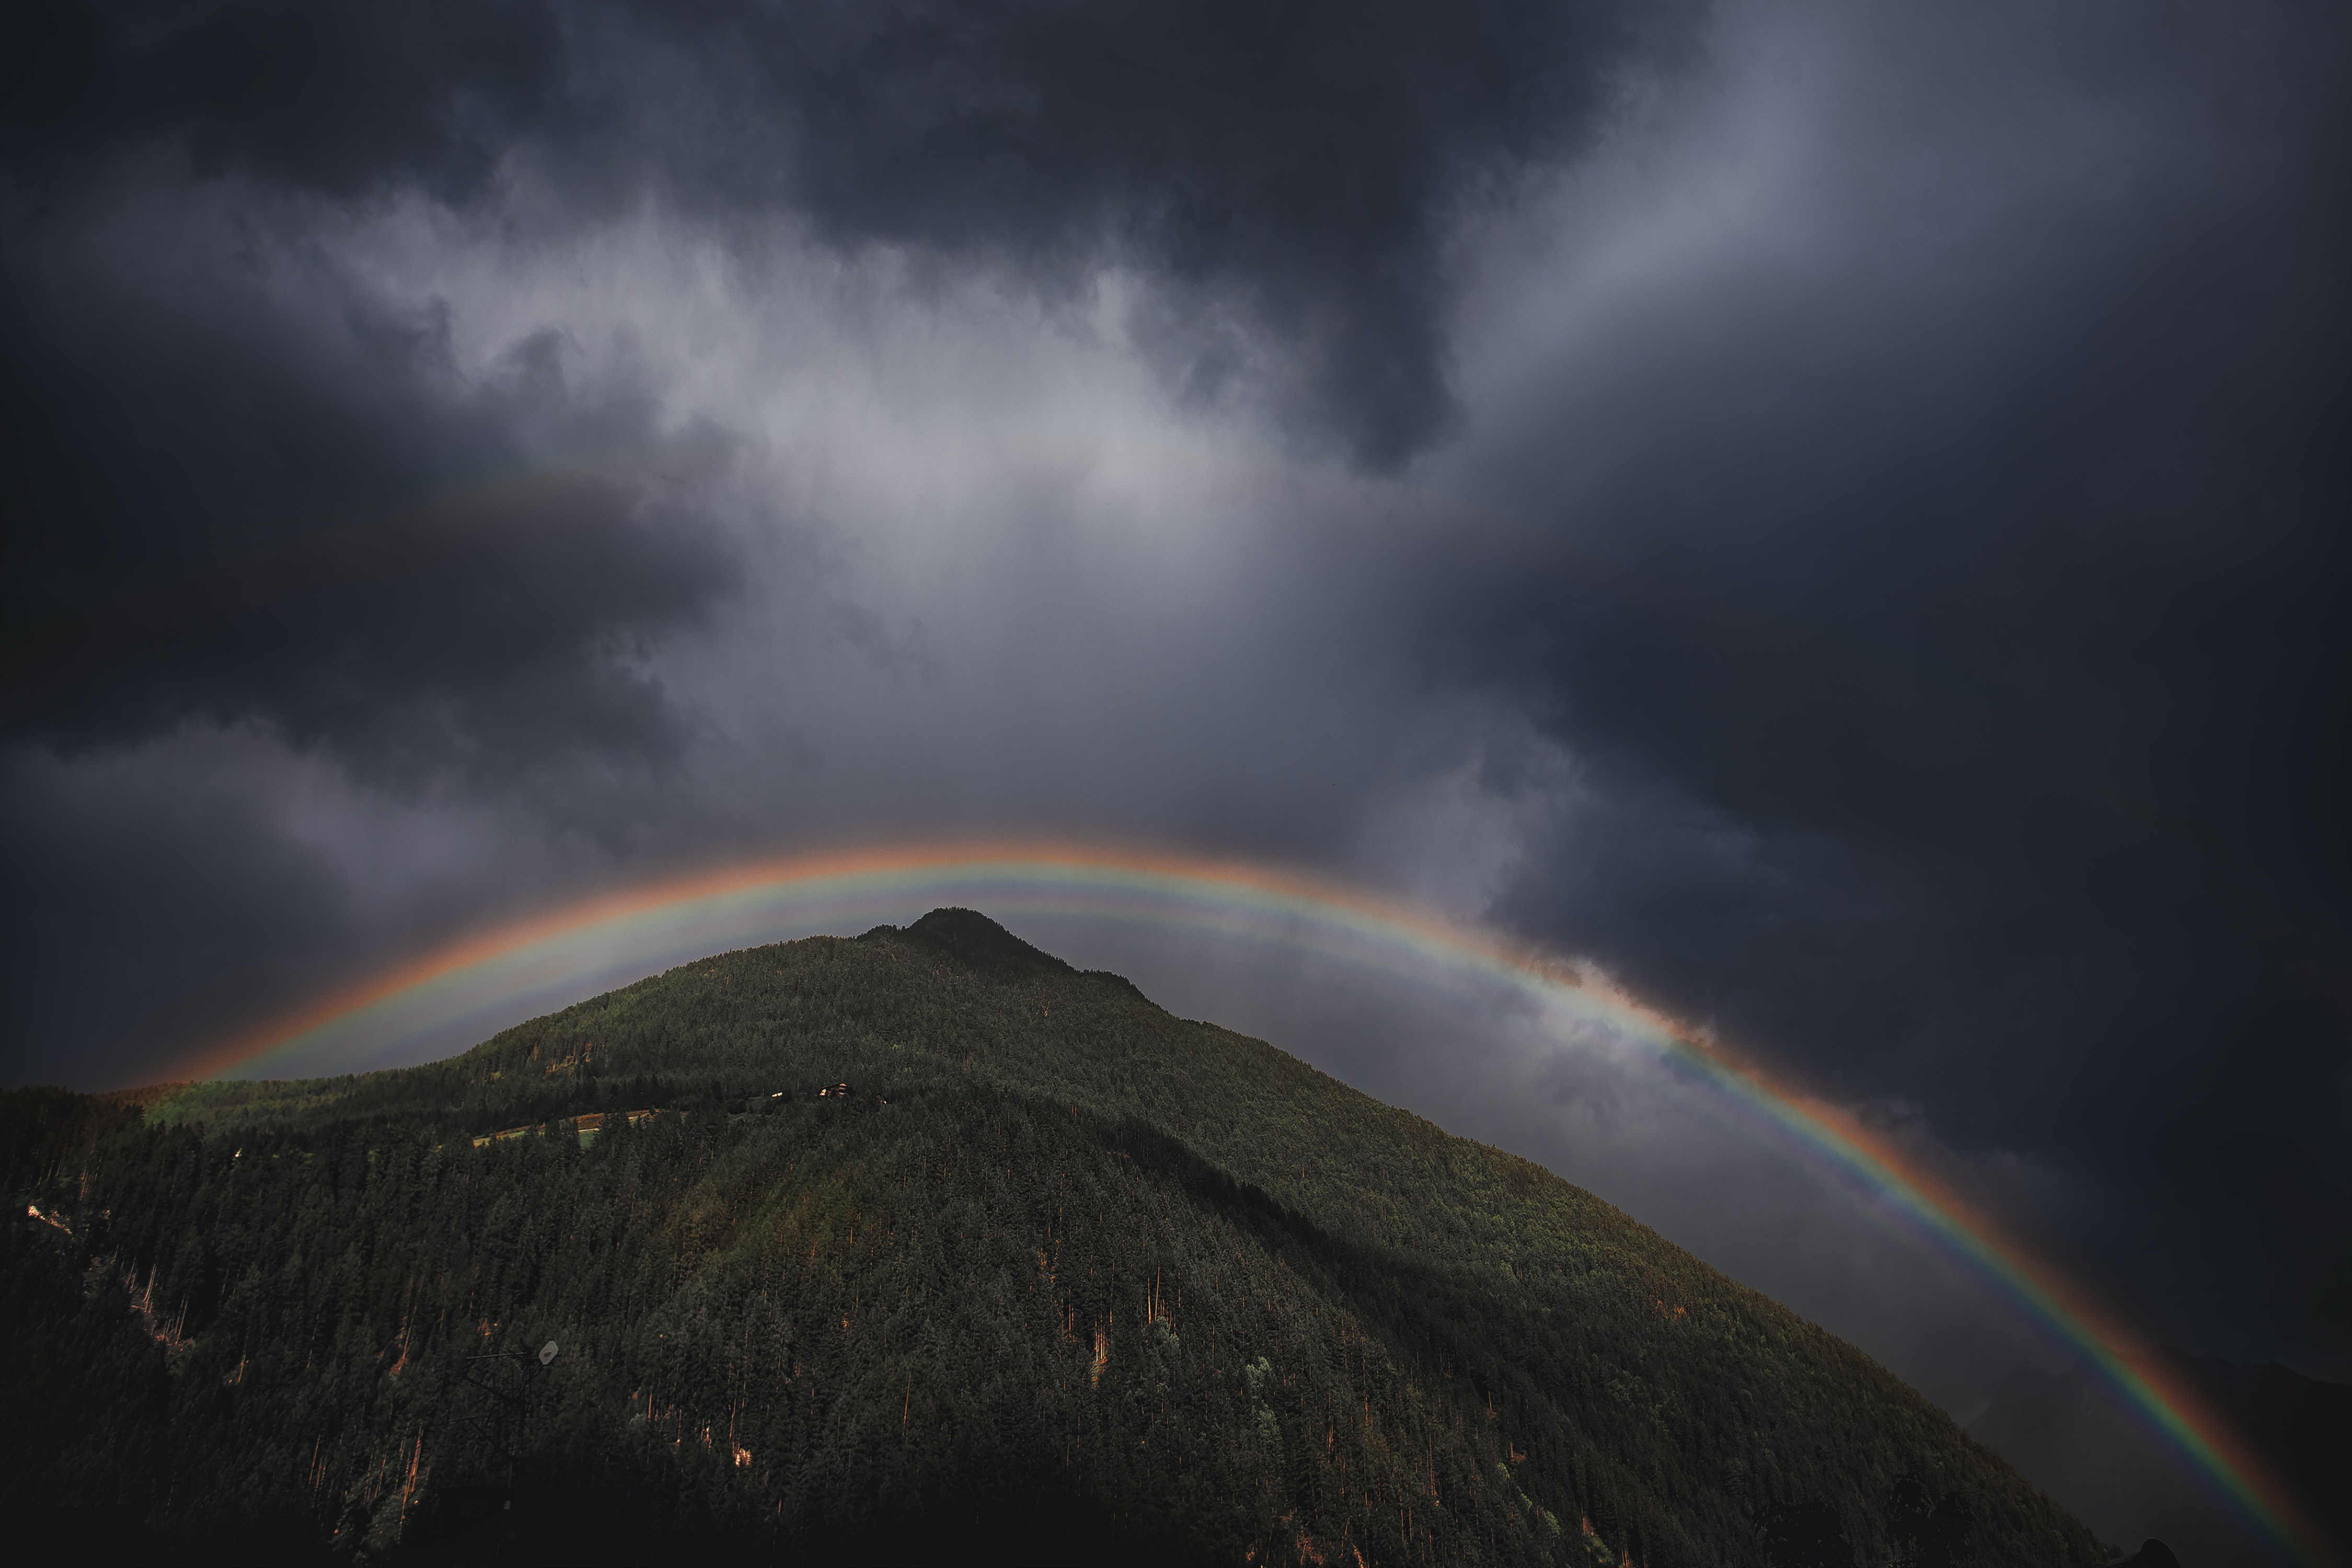 low angle photo of mountain under rainbow and cloudy sky at daytime